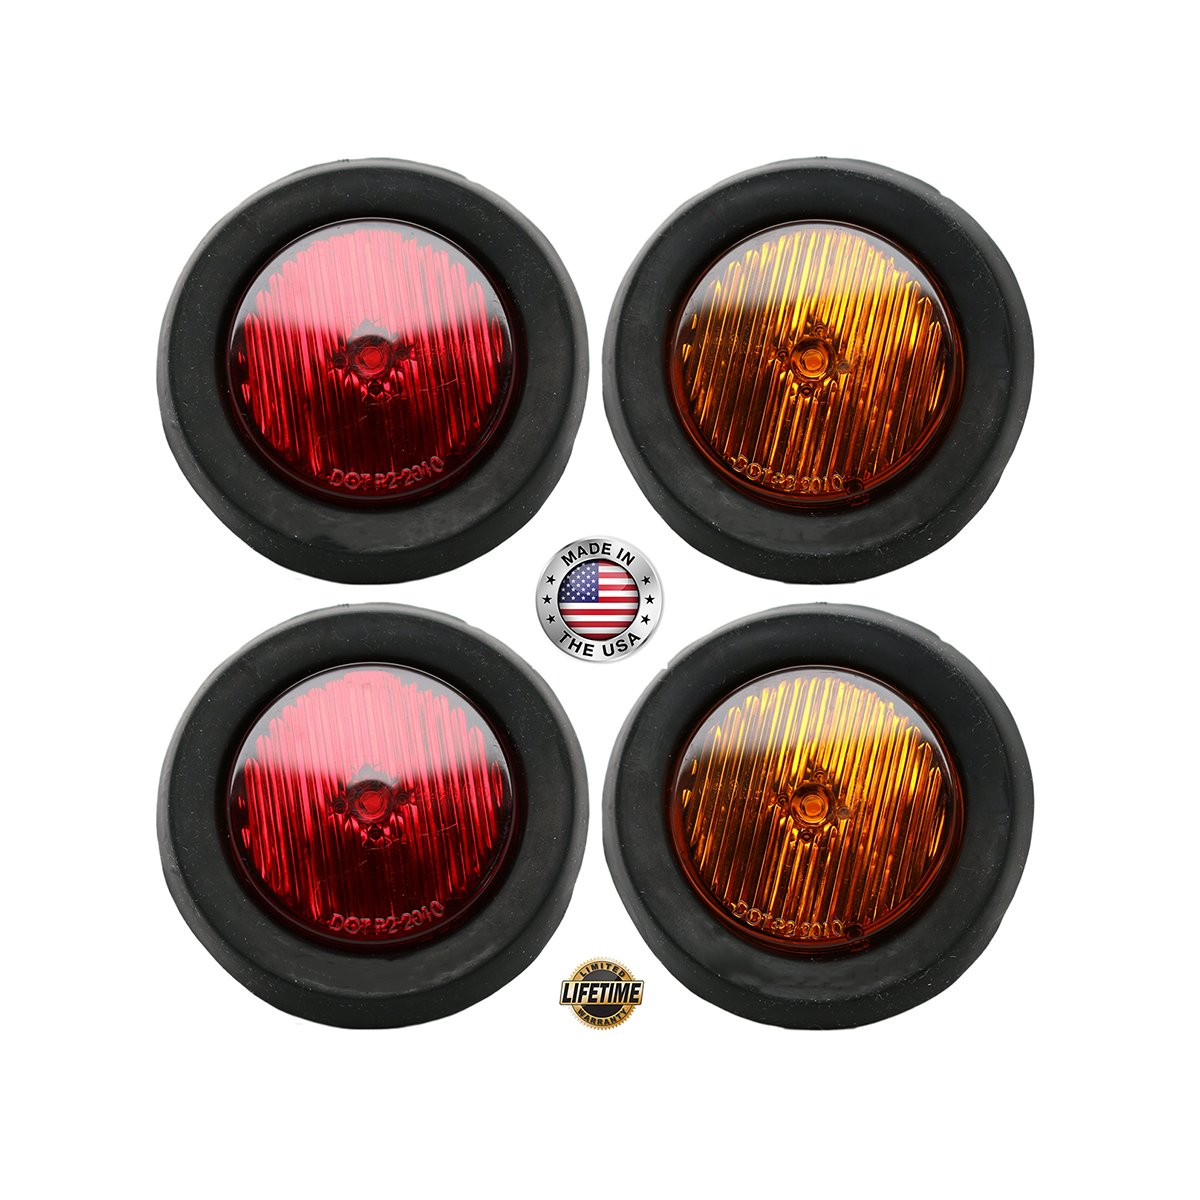 2 Round LED Clearance//Side Markers Grommet Mounted 4 Pack Trucks Trailers RVs Lights Made in USA TecNiq 5559011615